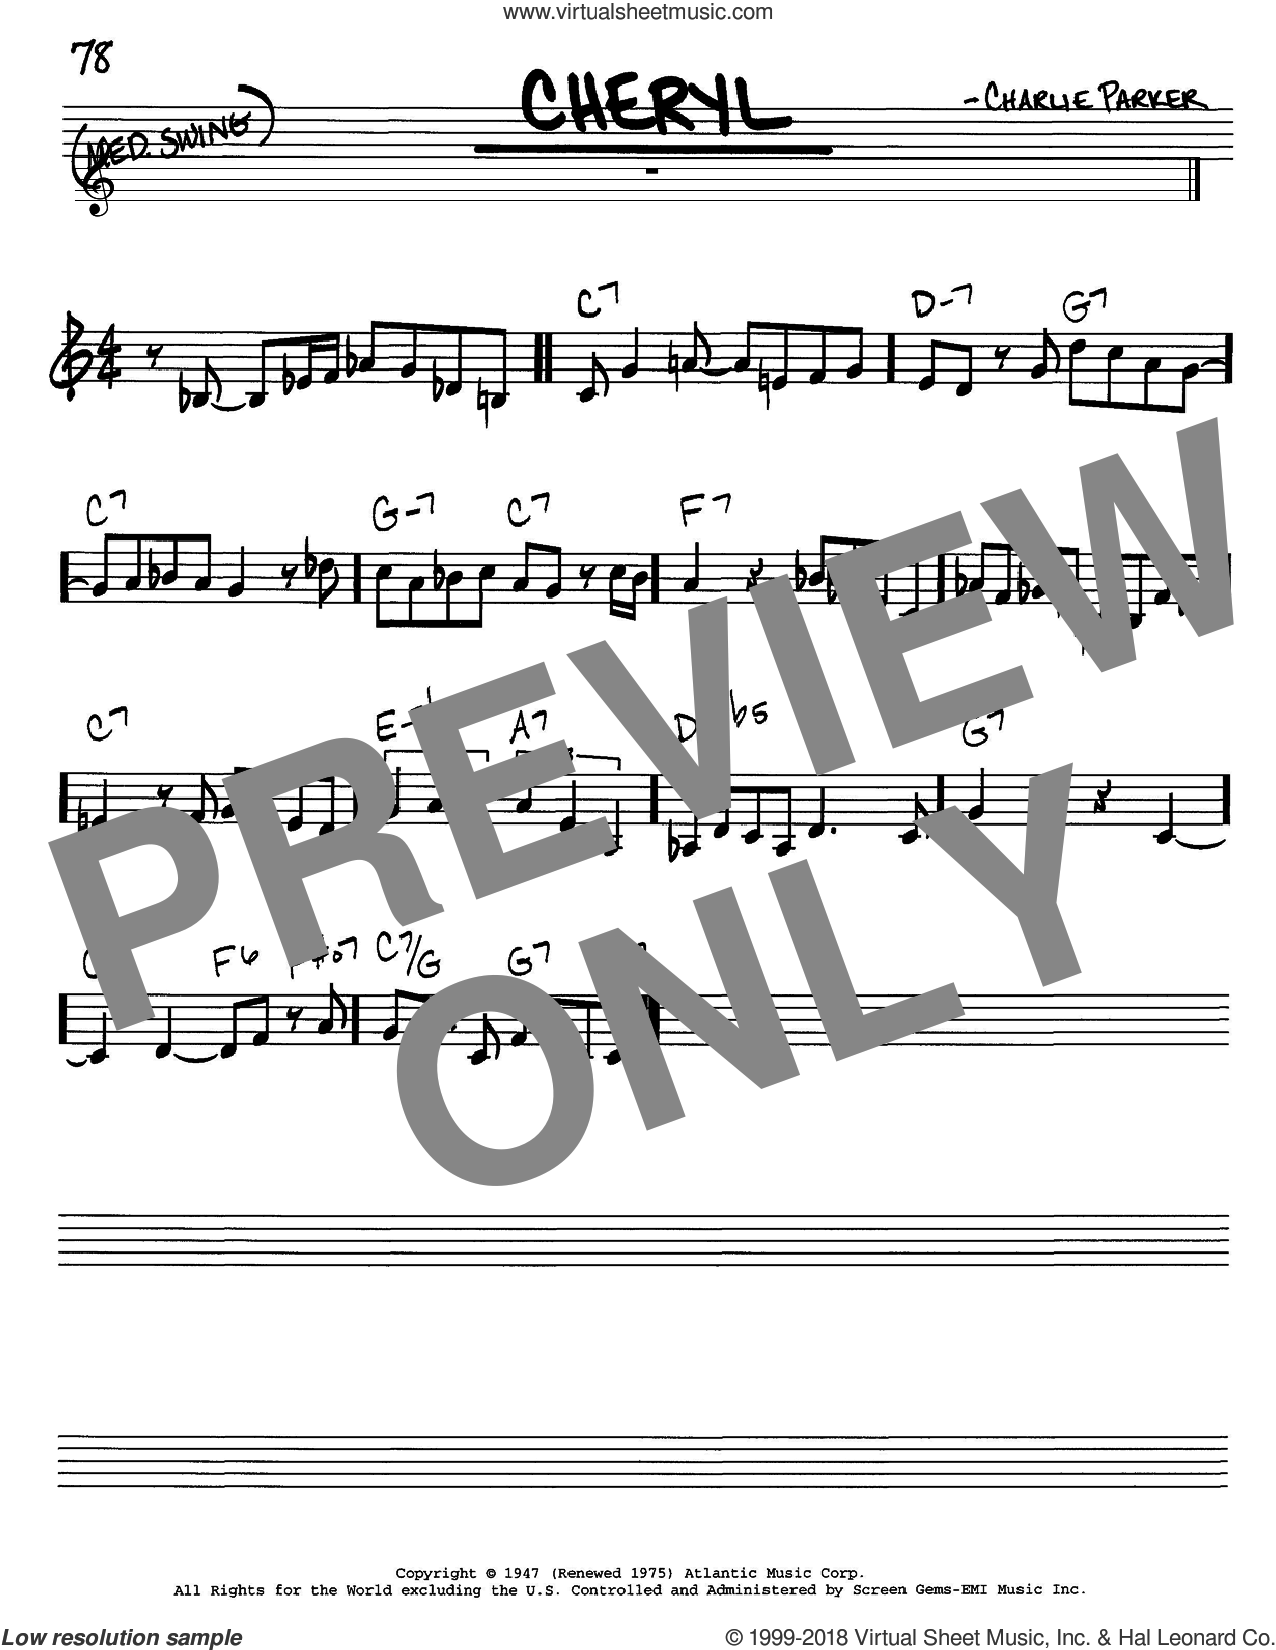 Cheryl sheet music for voice and other instruments (C) by Charlie Parker